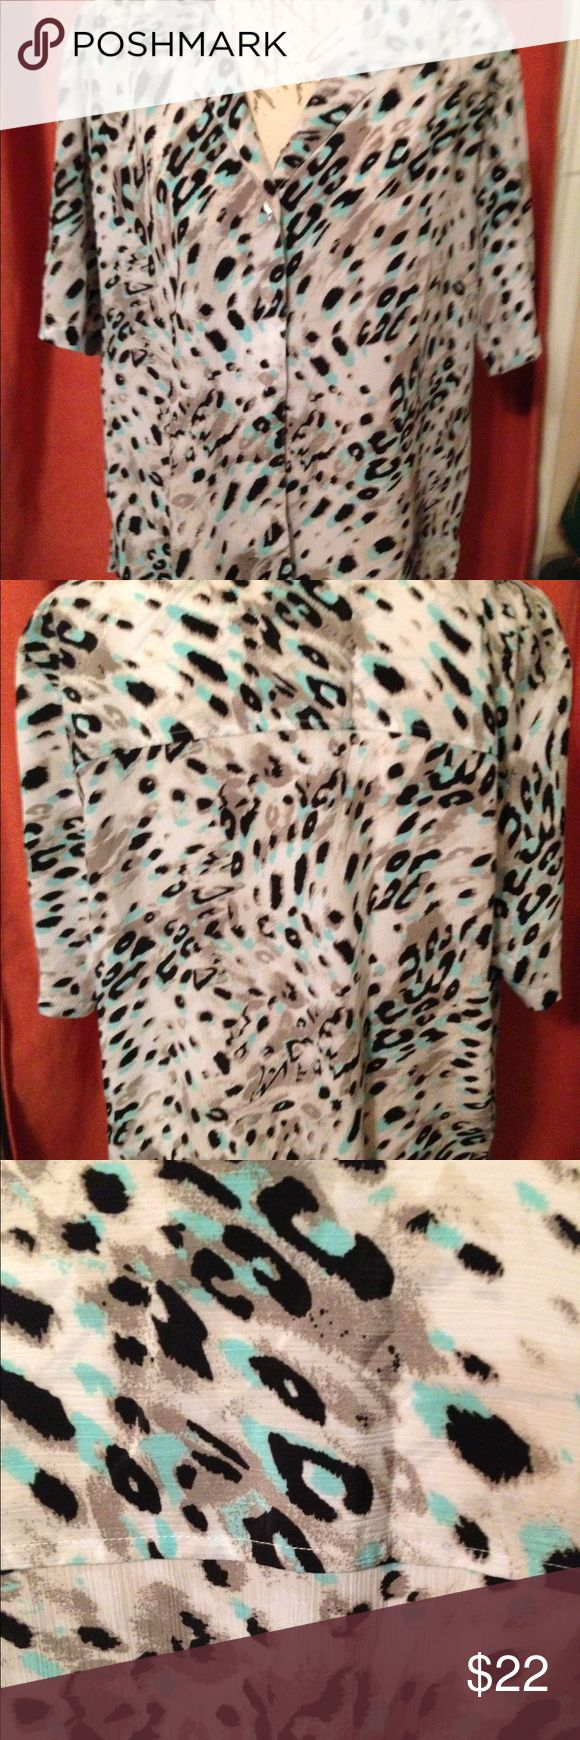 "DonnKenny Women's Animal Print A 1 Blouse EUC short sleeve, button front, animal print is lightweight polyester crinkle fabric with side vents. Multi colors of teal, black, beige and gray.  Size XL measuring 24"" pit to pit with 26"" length. Donnkenny Tops Blouses"